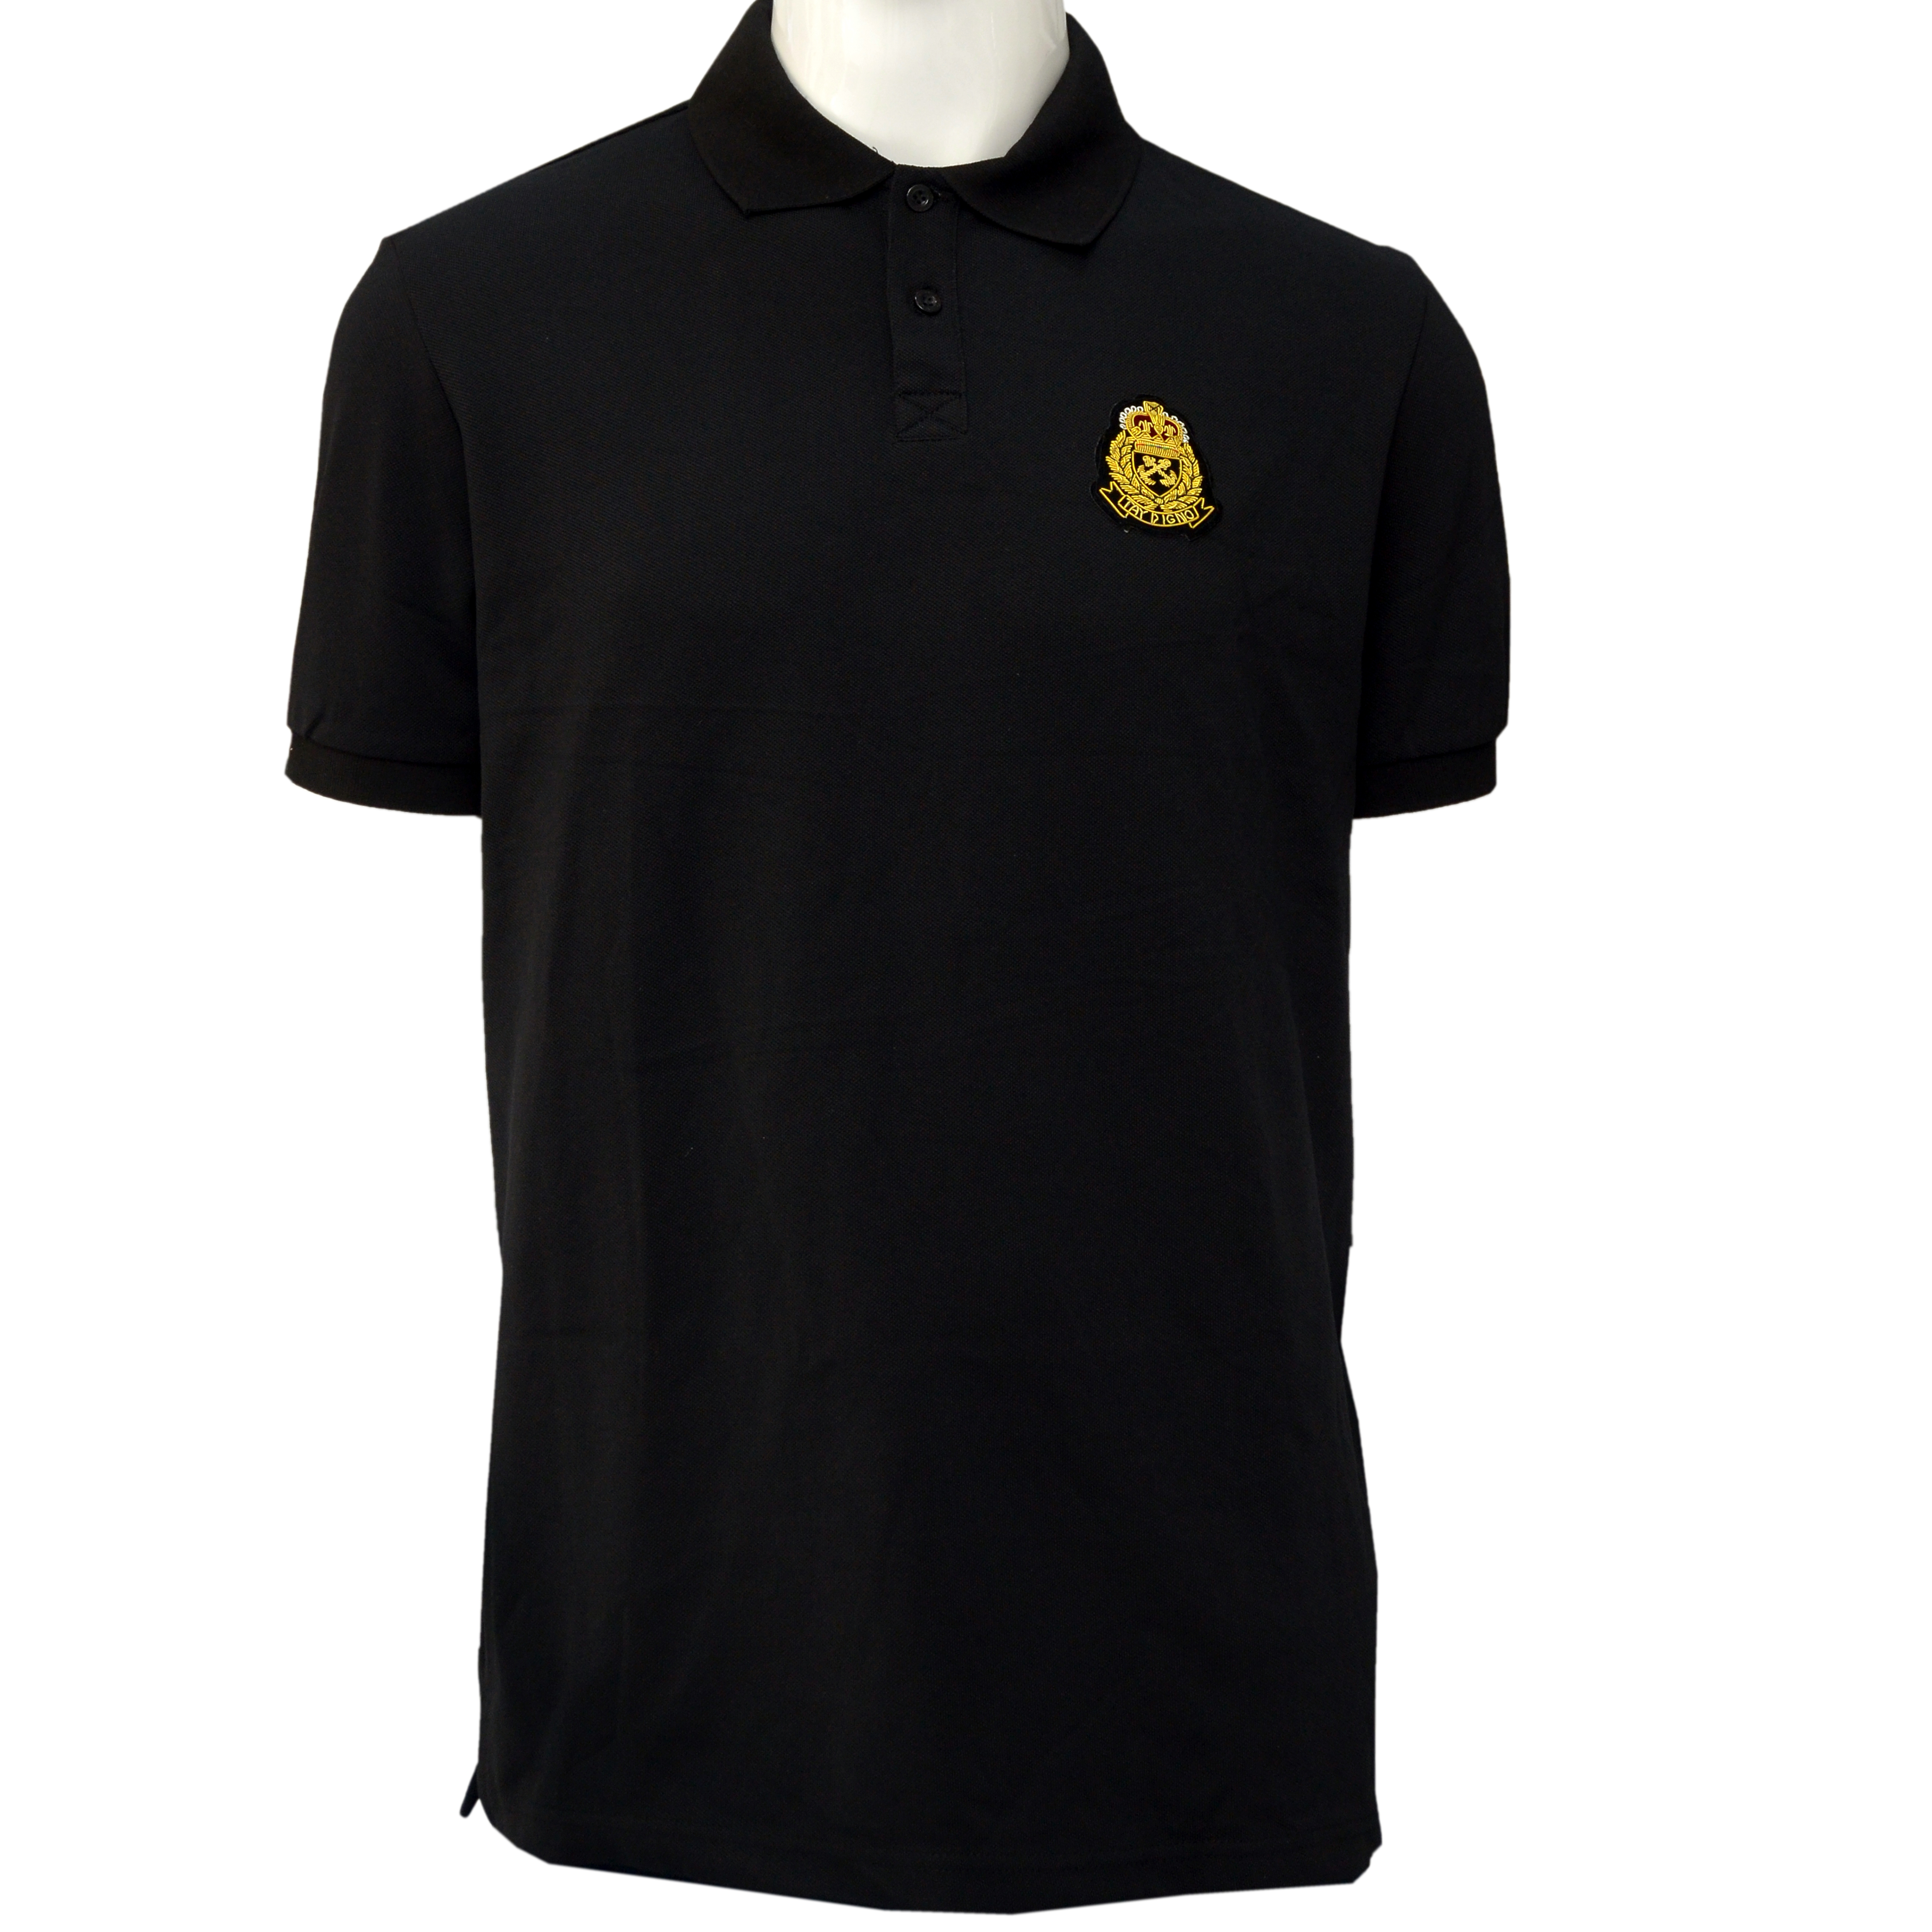 TD Crested Polo Black